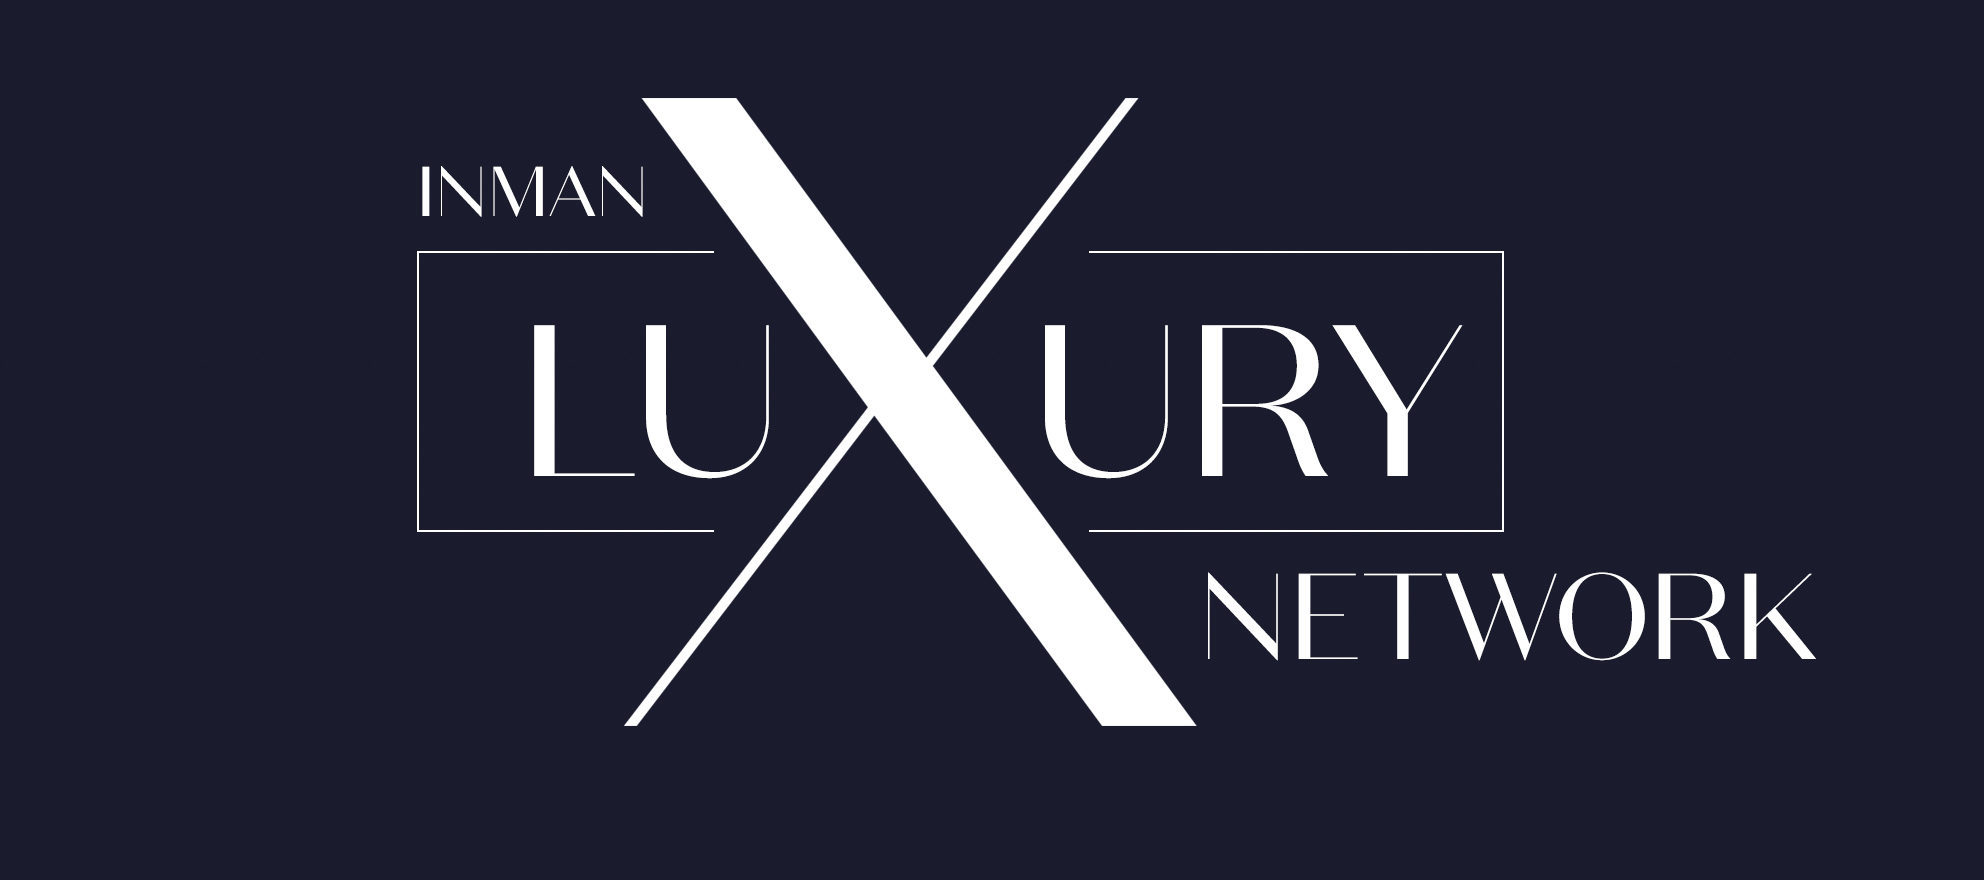 Introducing the Inman Luxury Network